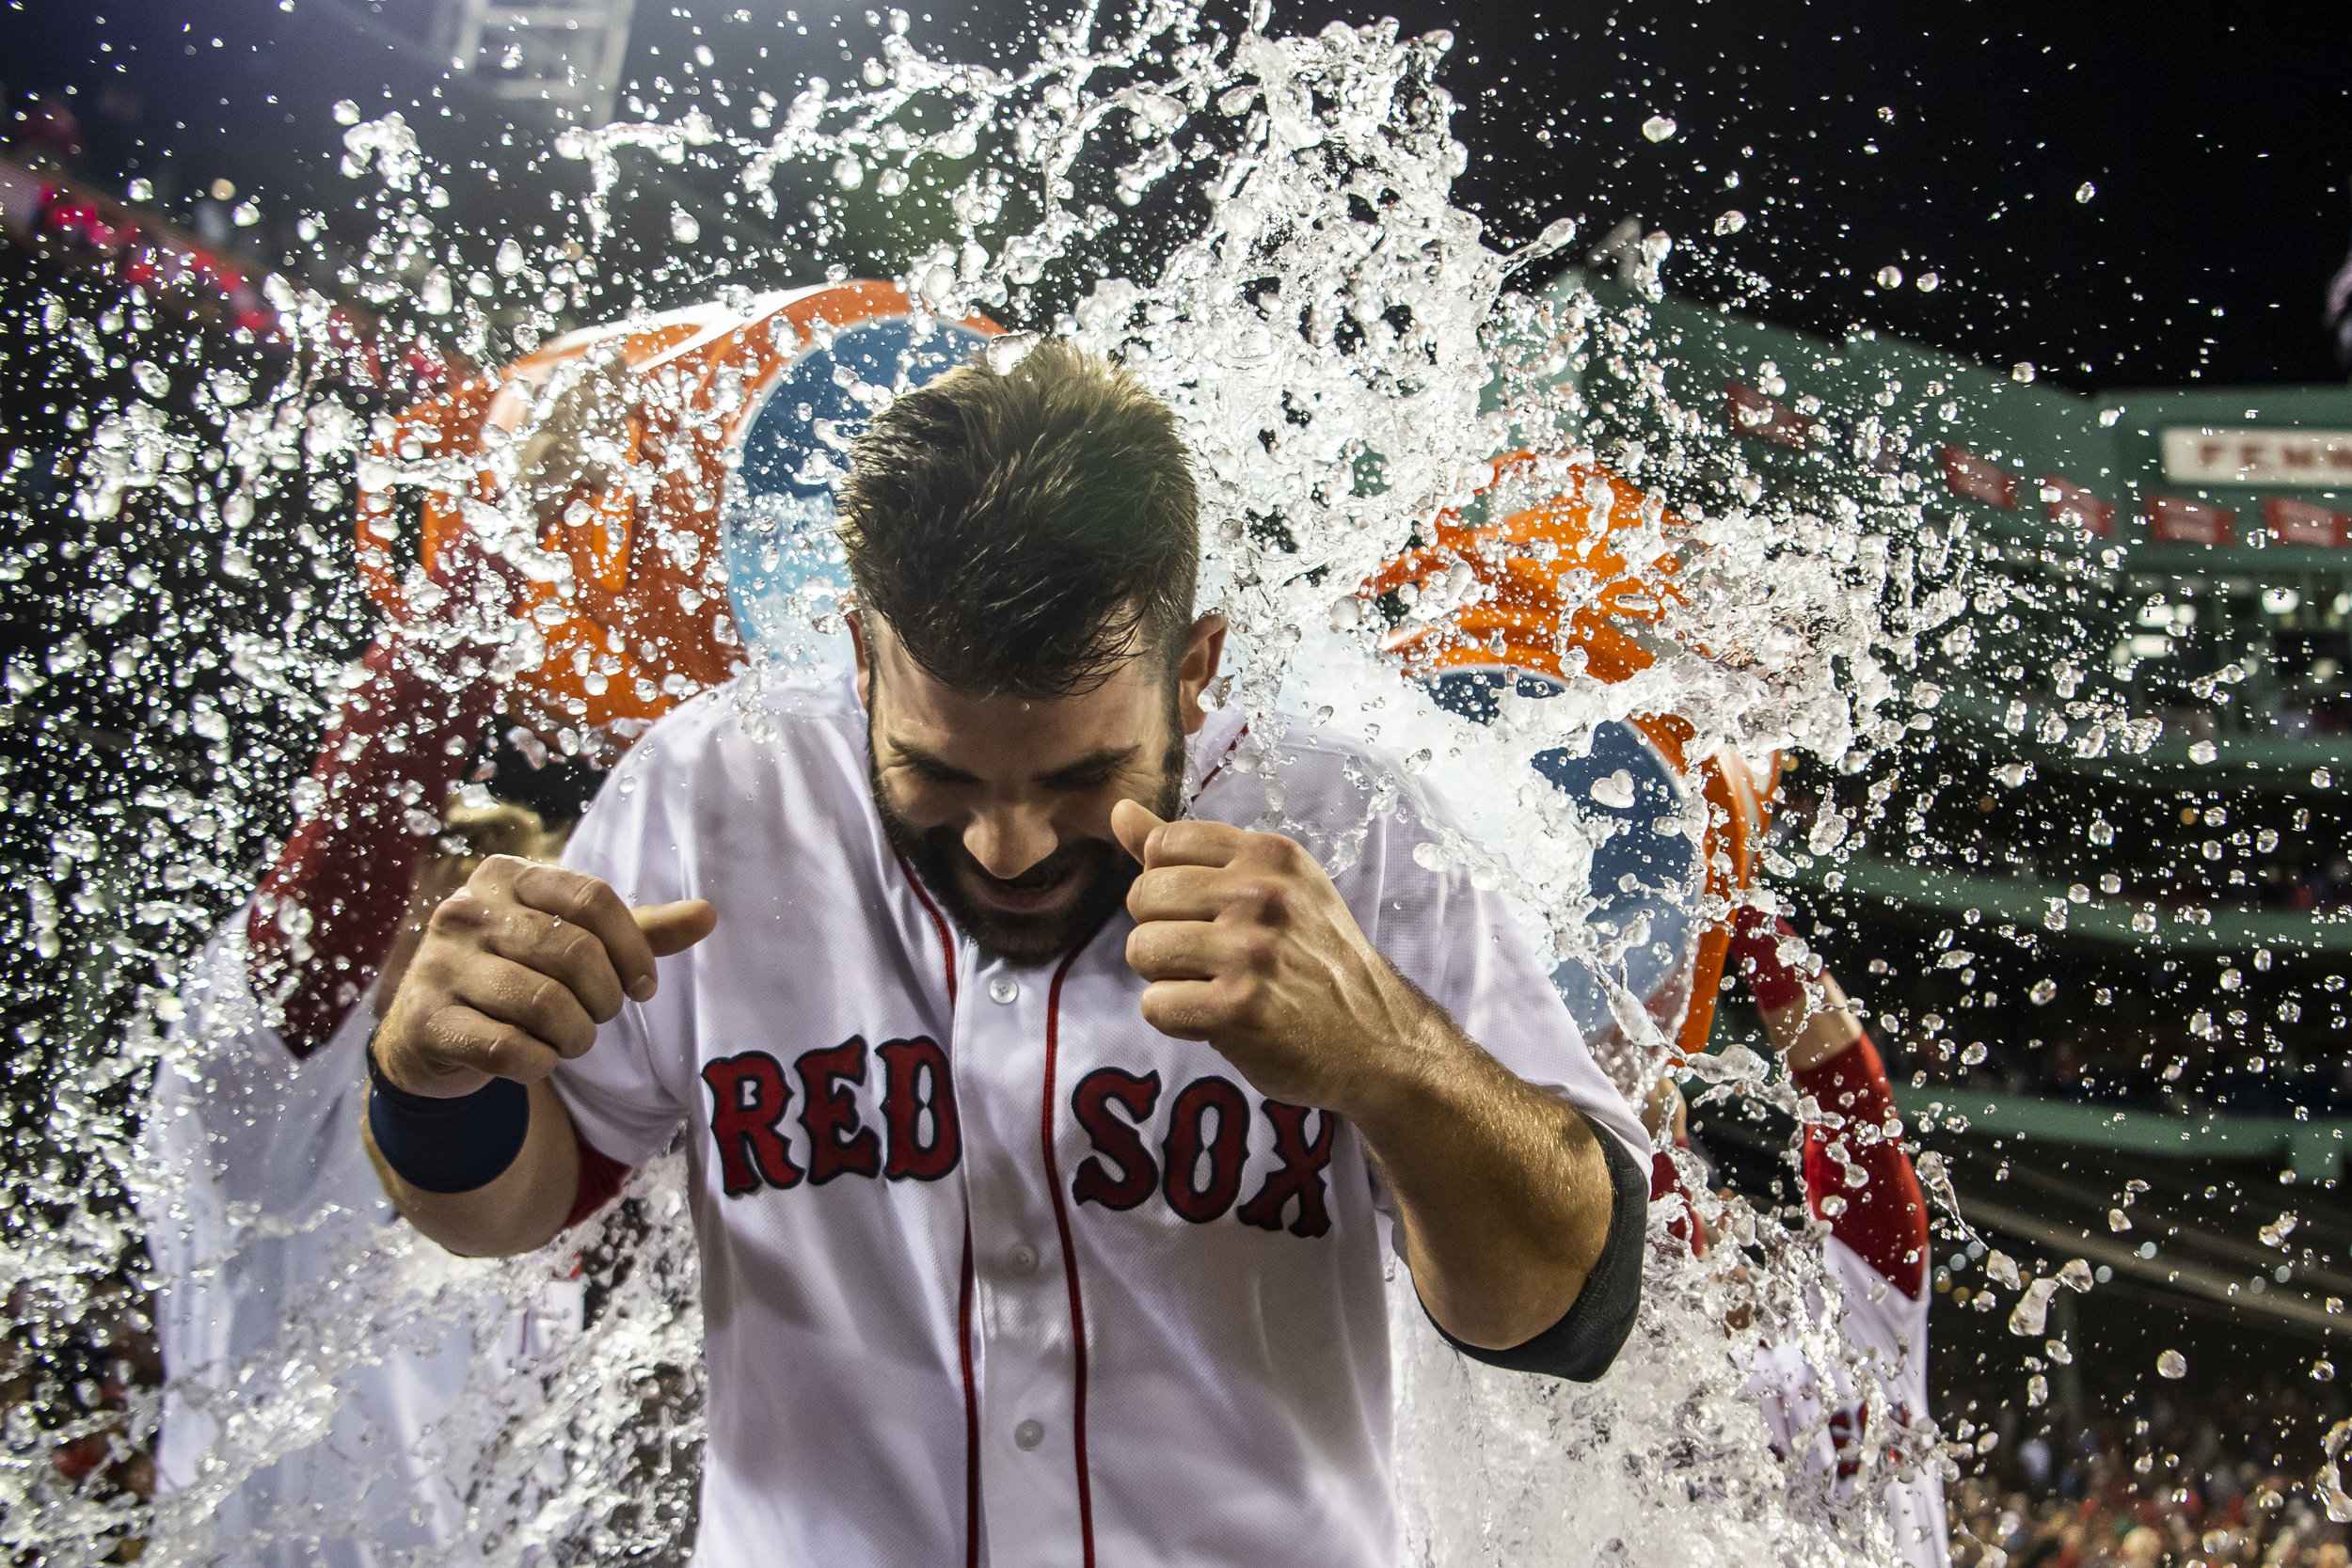 September 9, 2018 - Boston, MA: Boston Red Sox first basemen Mitch Moreland is doused with Gatorade after the Boston Red Sox defeated the Houston Astros at Fenway Park in Boston, Massachusetts on Sunday, September 9, 2018. (Photo by Matthew Thomas/Boston Red Sox)